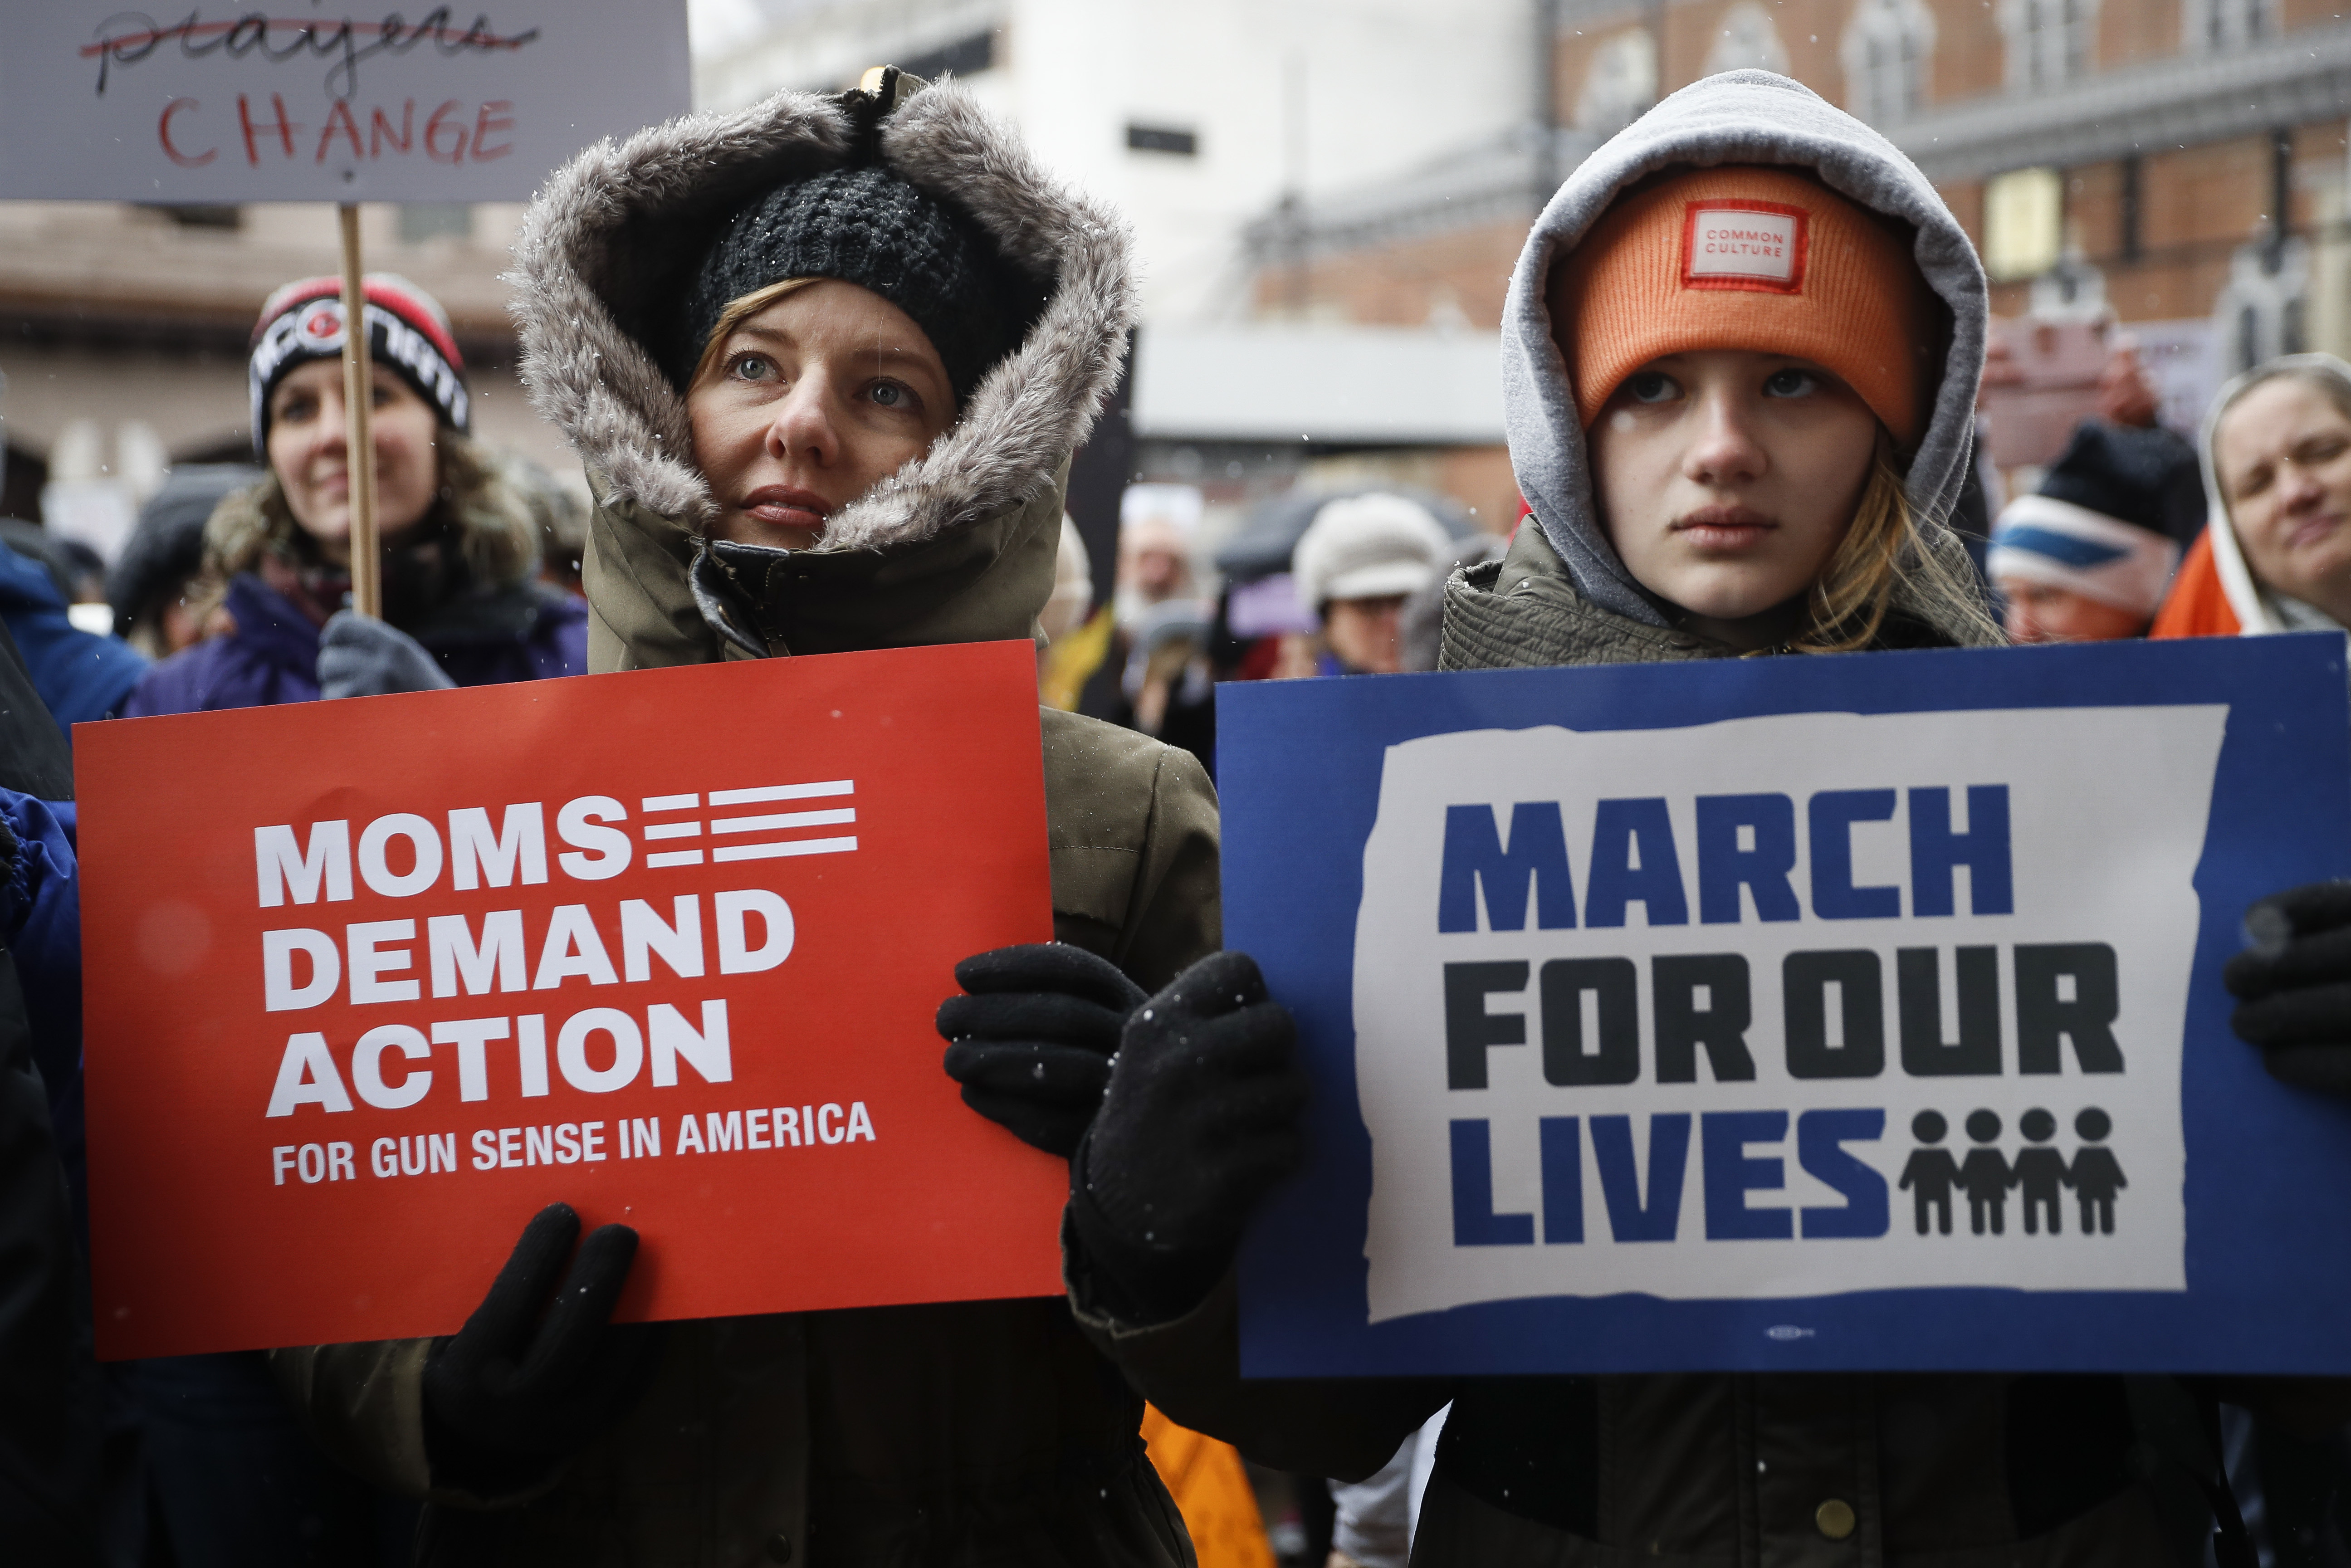 <div class='meta'><div class='origin-logo' data-origin='AP'></div><span class='caption-text' data-credit='AP Photo/John Minchillo'>Demonstrators gather during the March for Our Lives protest for gun legislation and school safety outside city hall, Saturday, March 24, 2018, in Cincinnati.</span></div>